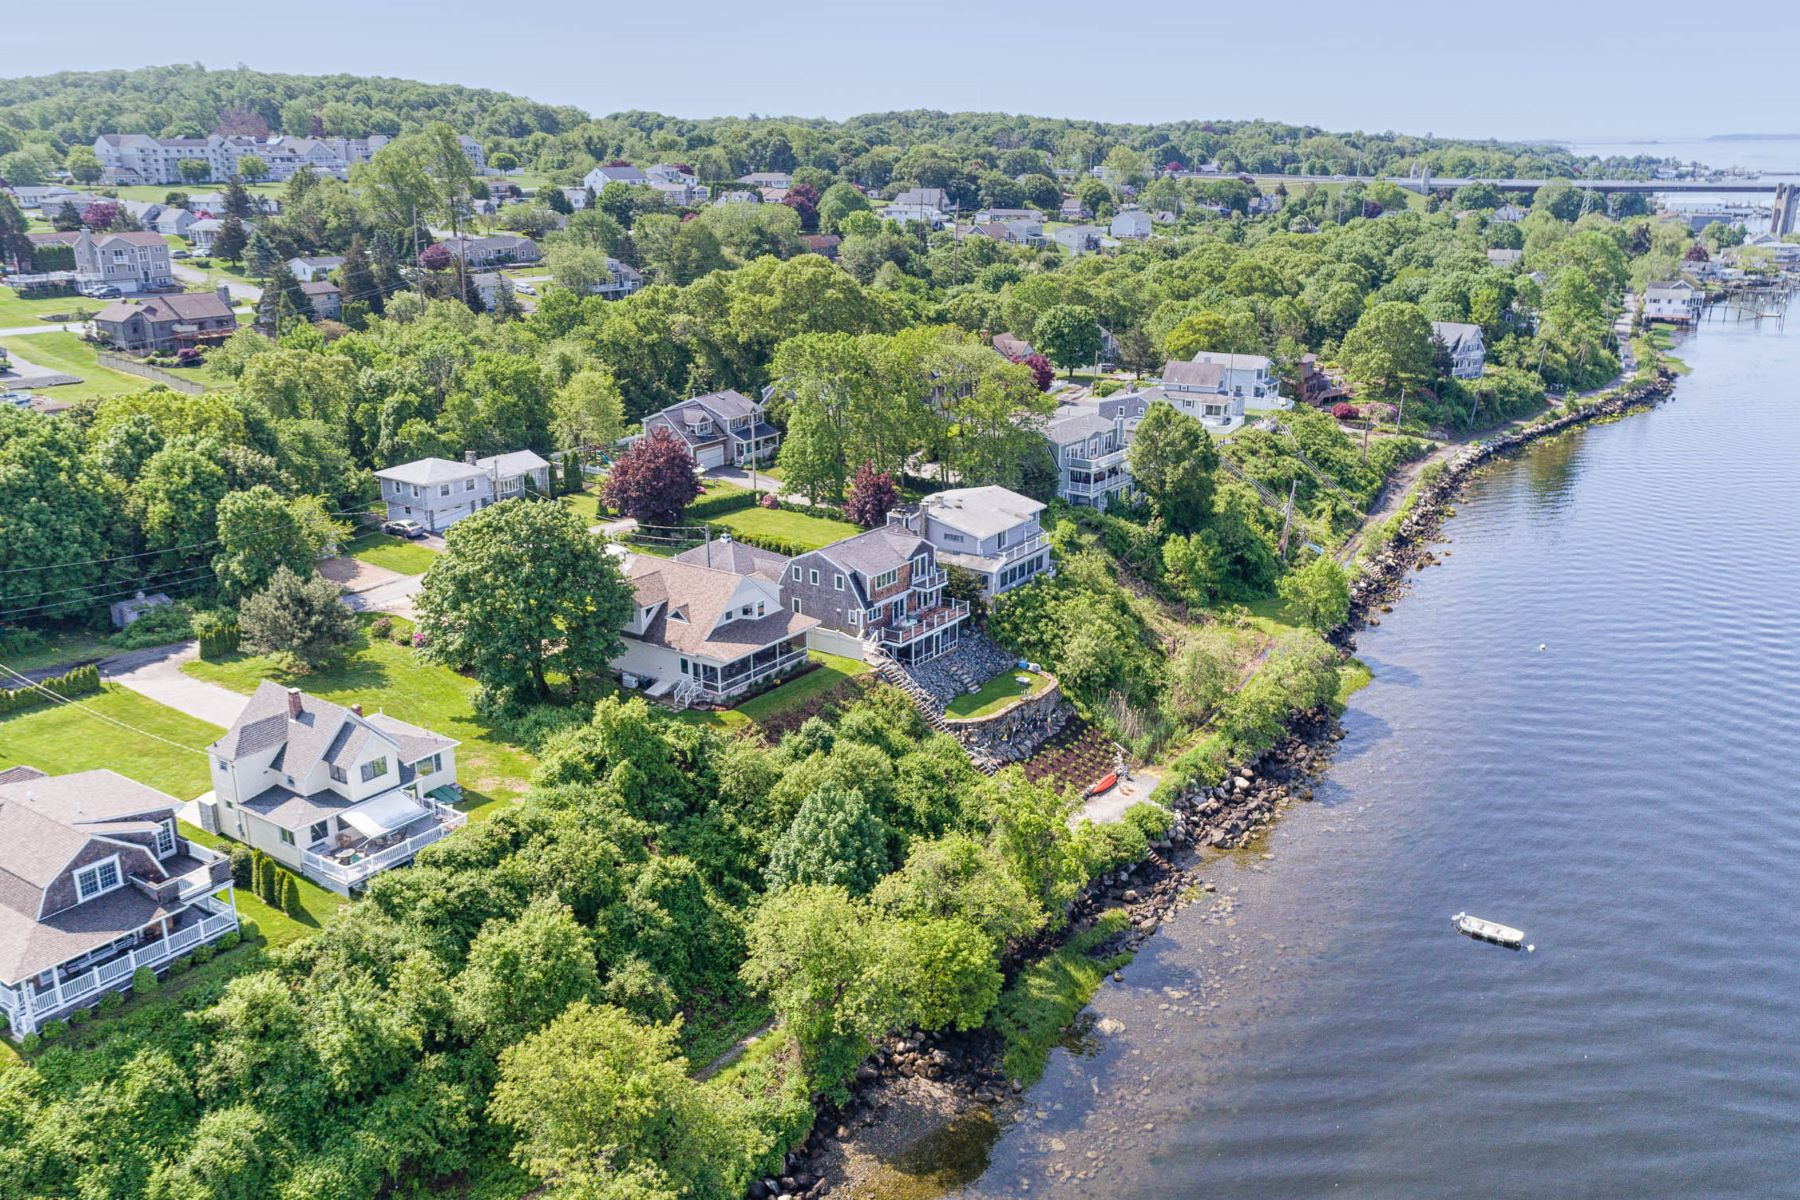 Single Family Homes for Sale at 496 Riverside Drive, Tiverton, RI 496 Riverside Drive Tiverton, Rhode Island 02878 United States